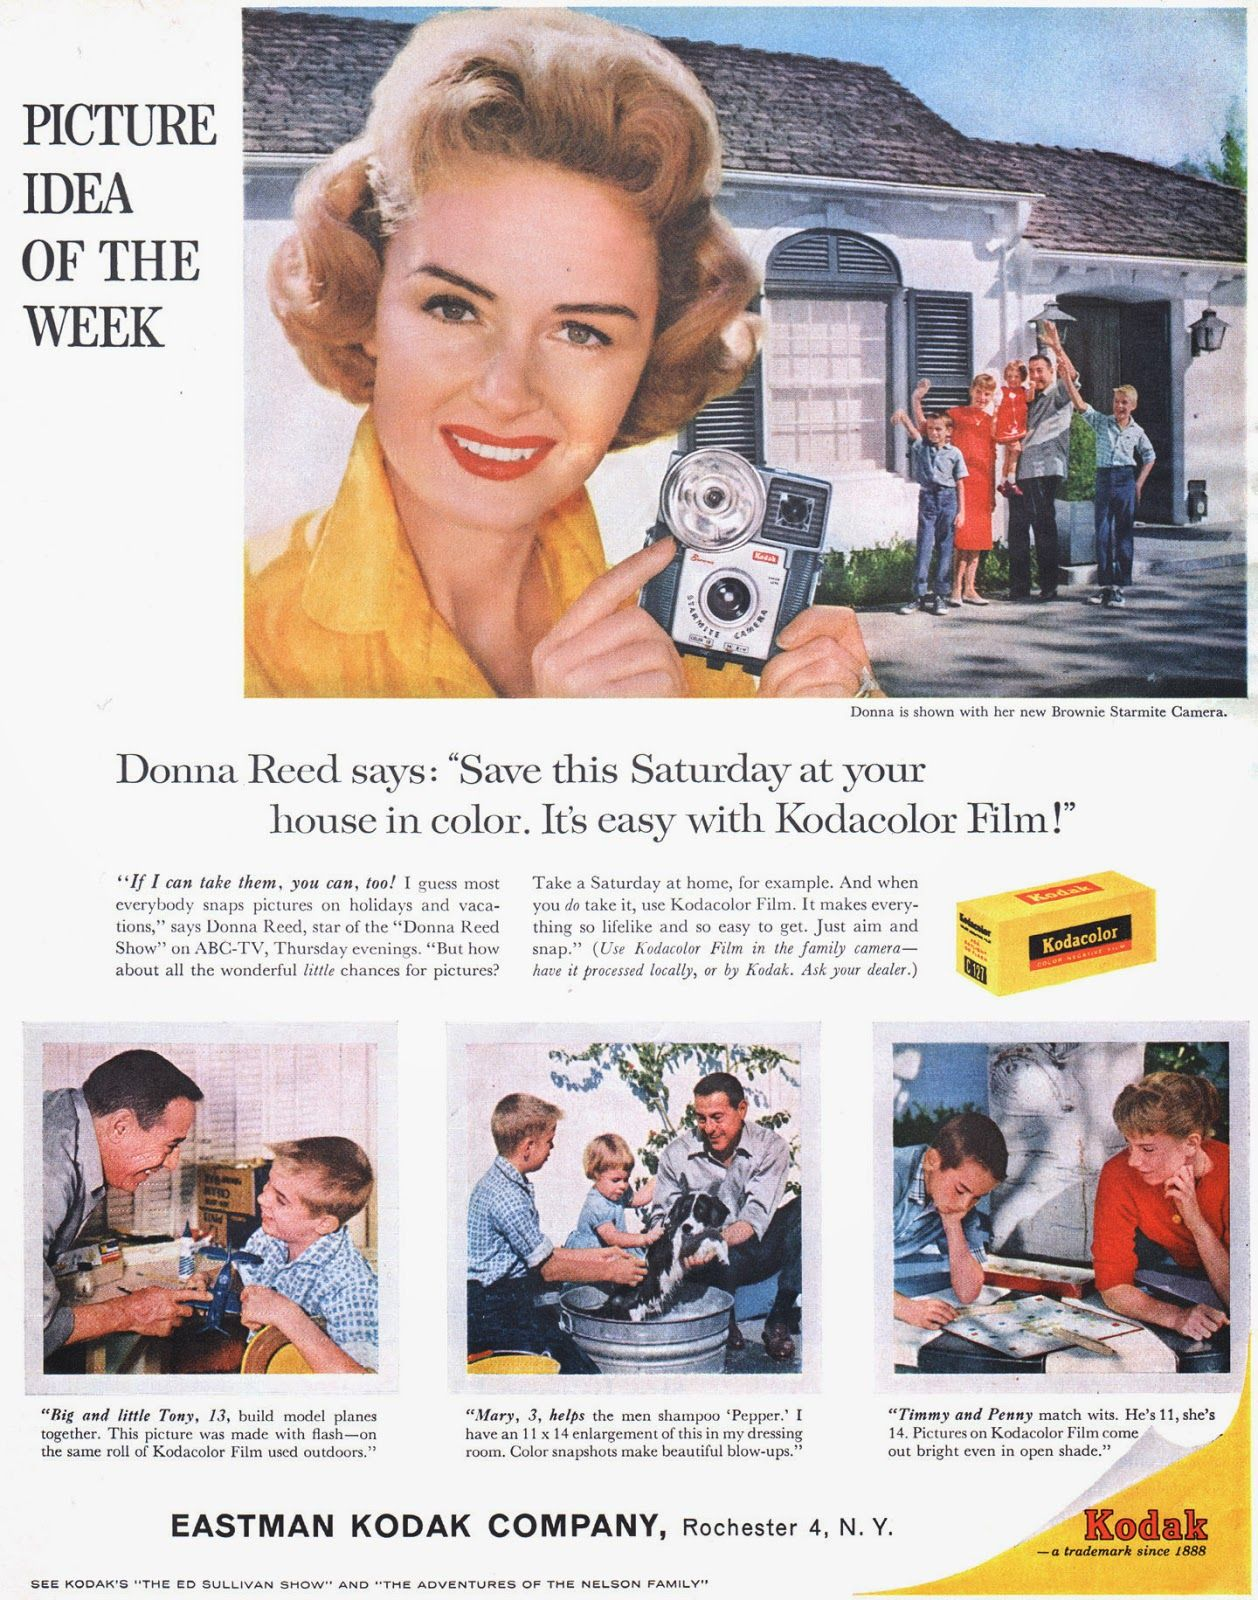 Pin On Ads Of The 1950 S And 1960 S And More With Some Celeberties